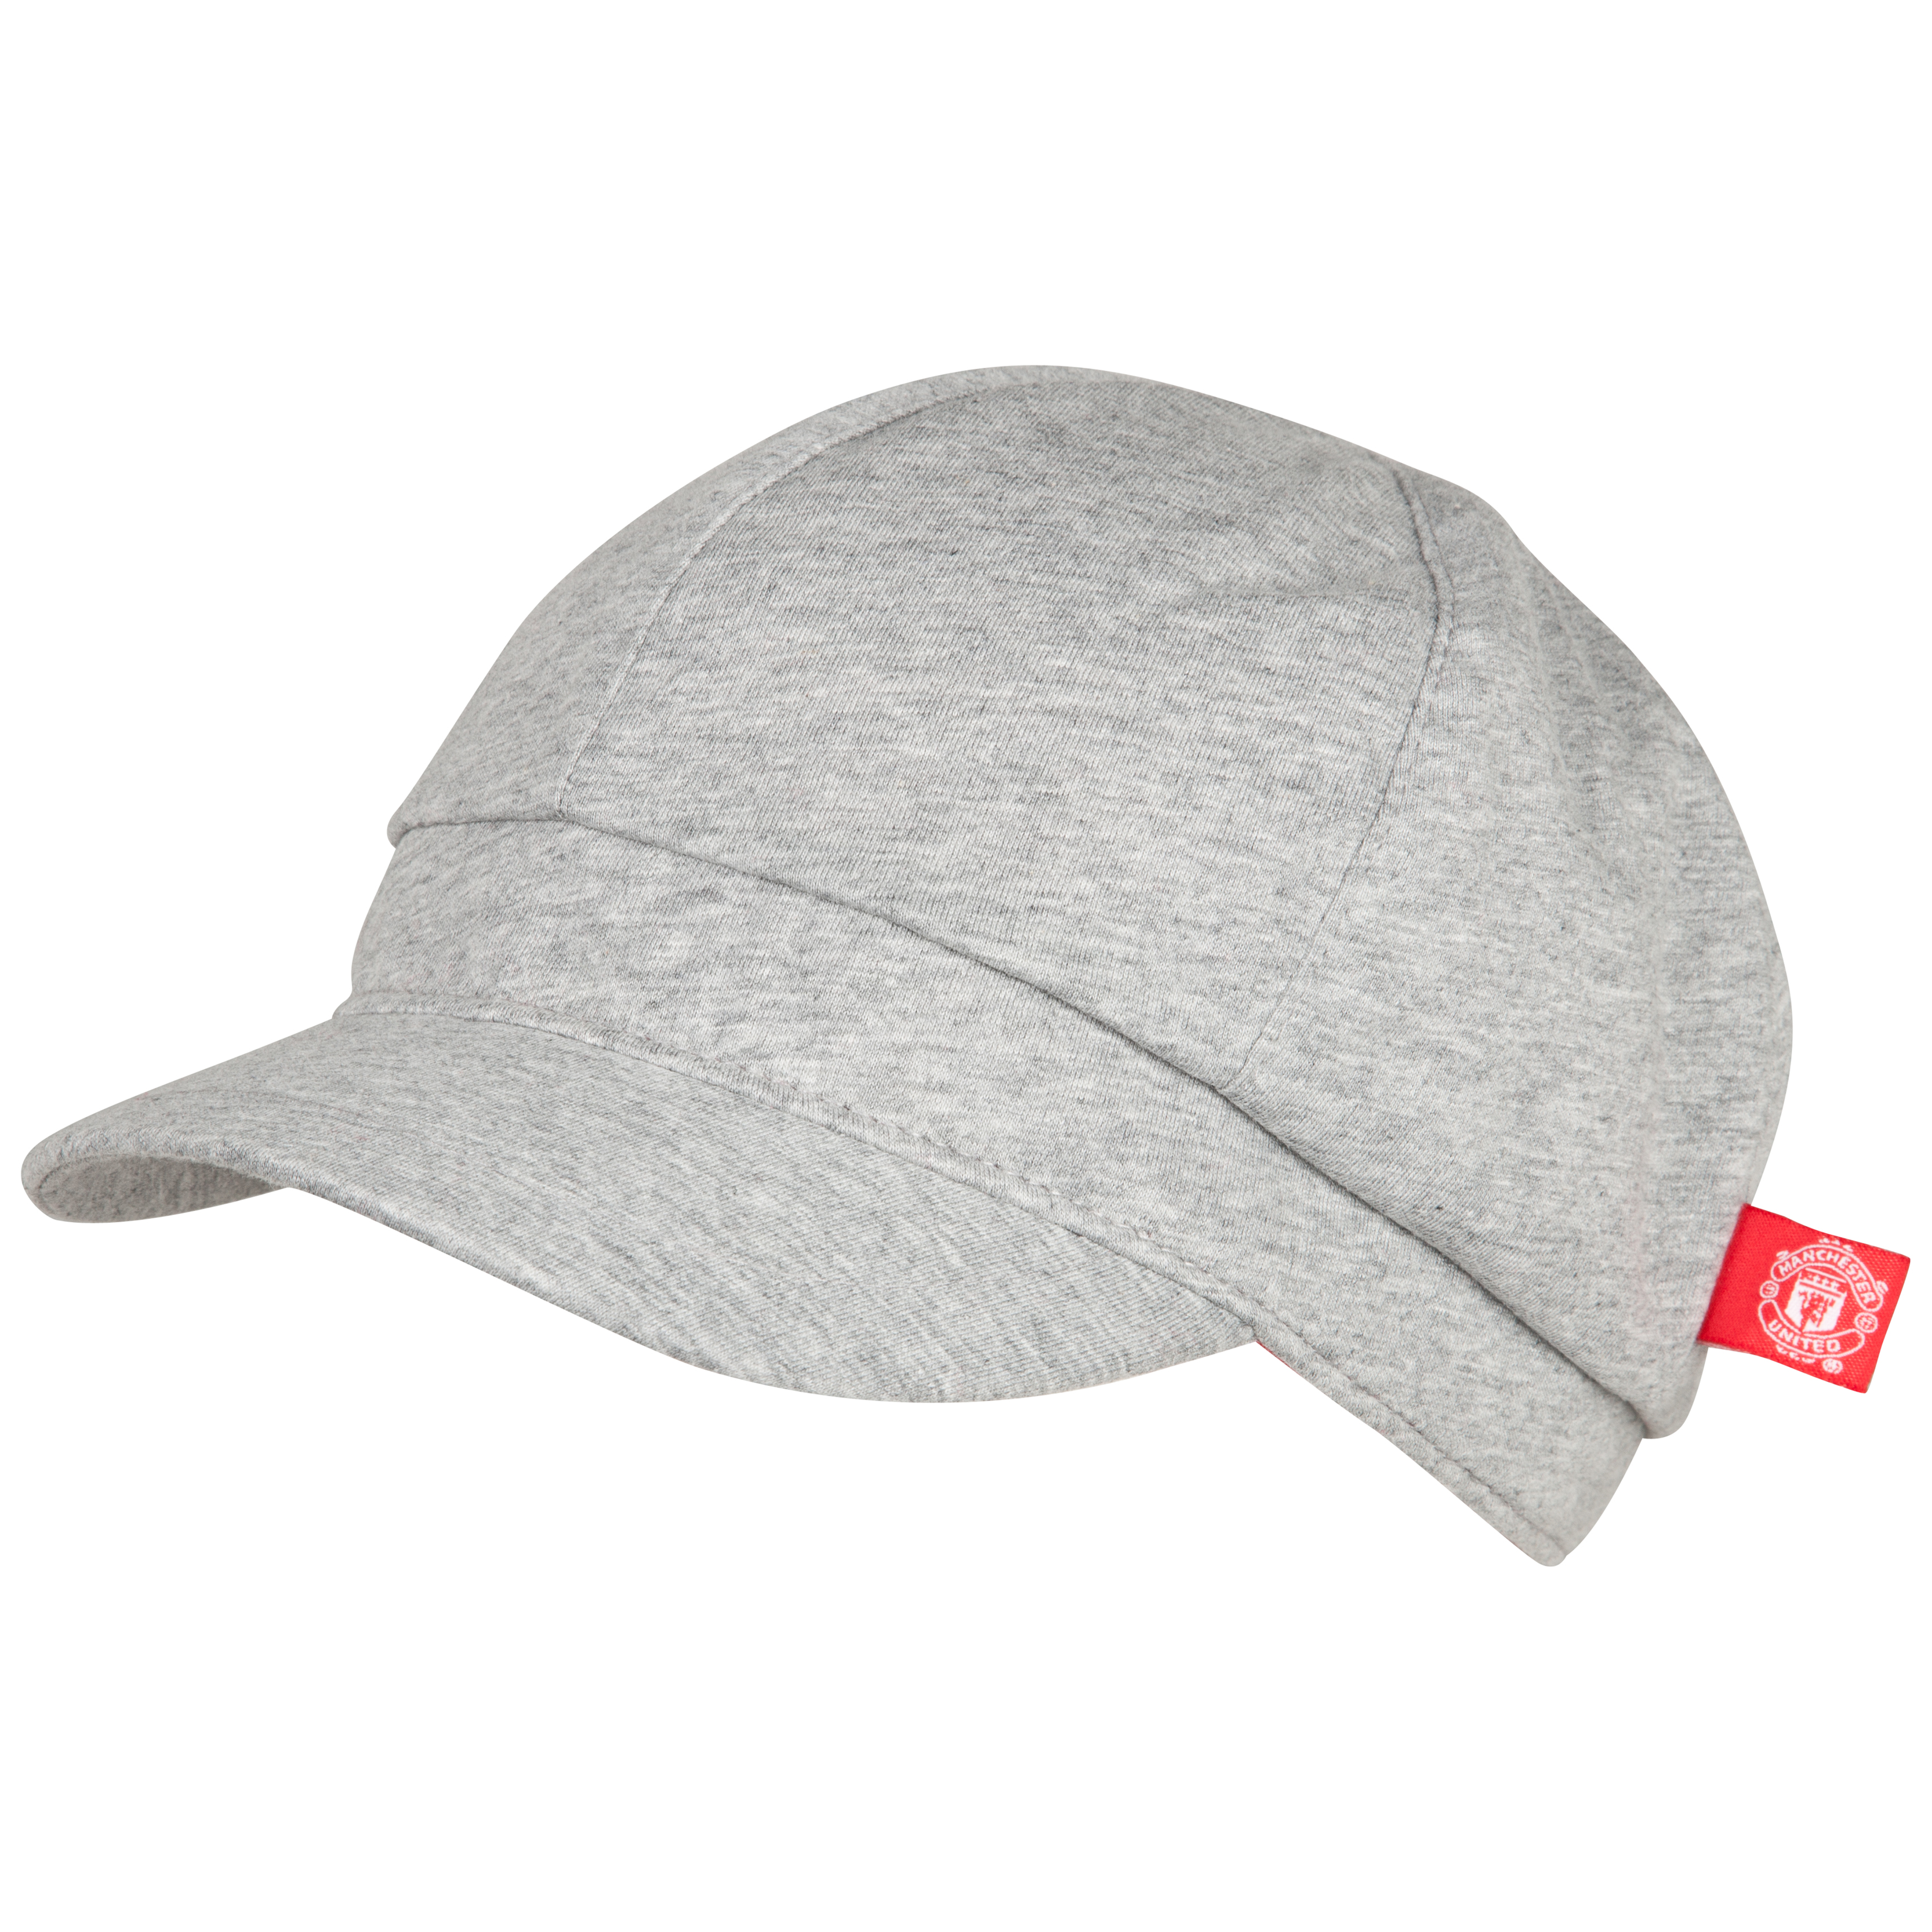 Manchester United Baker Boy Cap - Grey - Womens